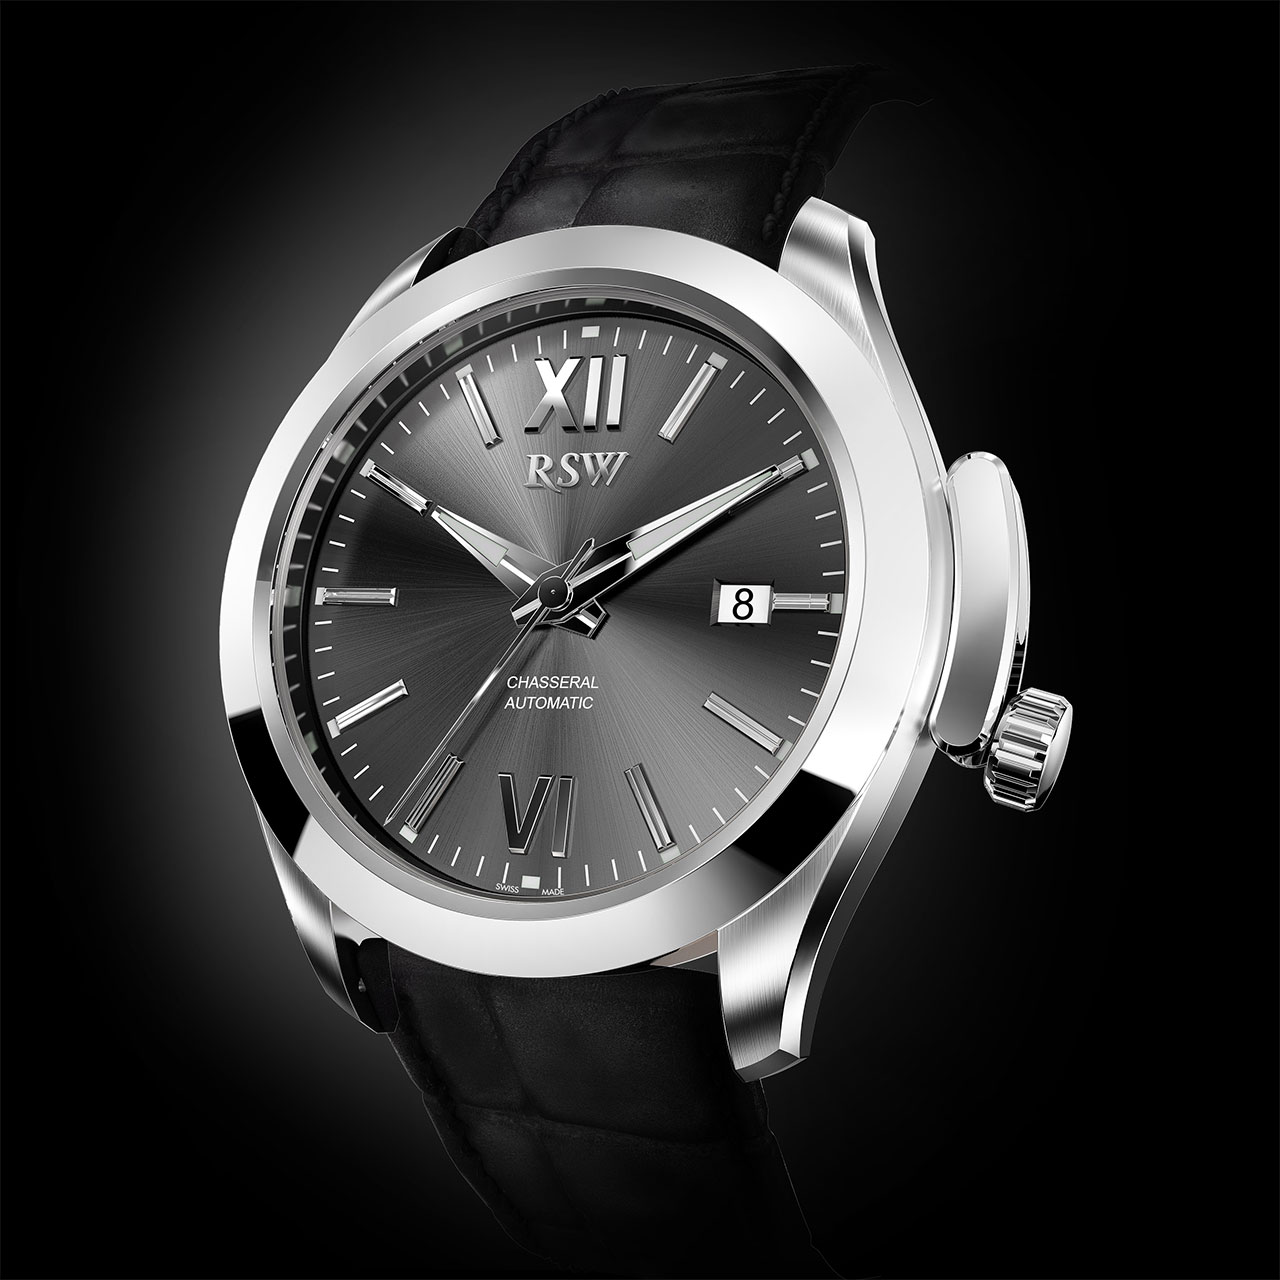 RSW Chasseral Mechanical Watch